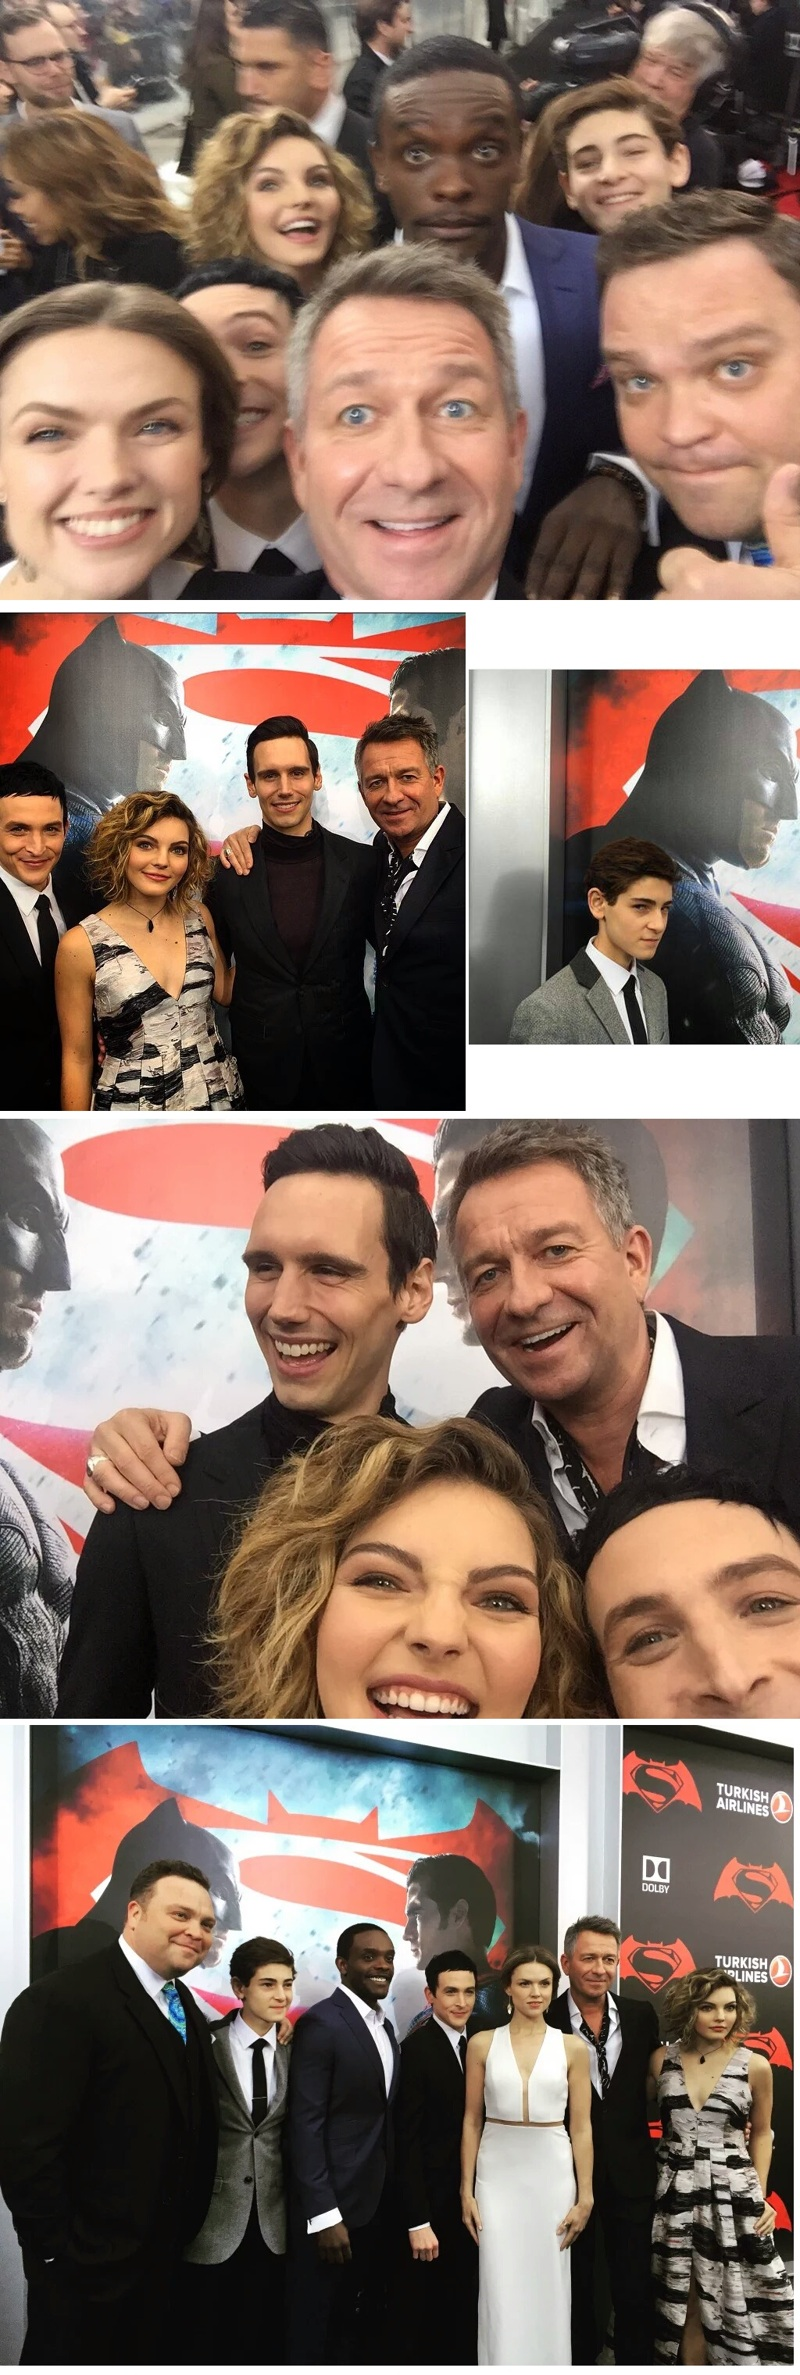 Gotham's cast to the premiere of Batman v Superman! Our heroes are insanely beautiful!